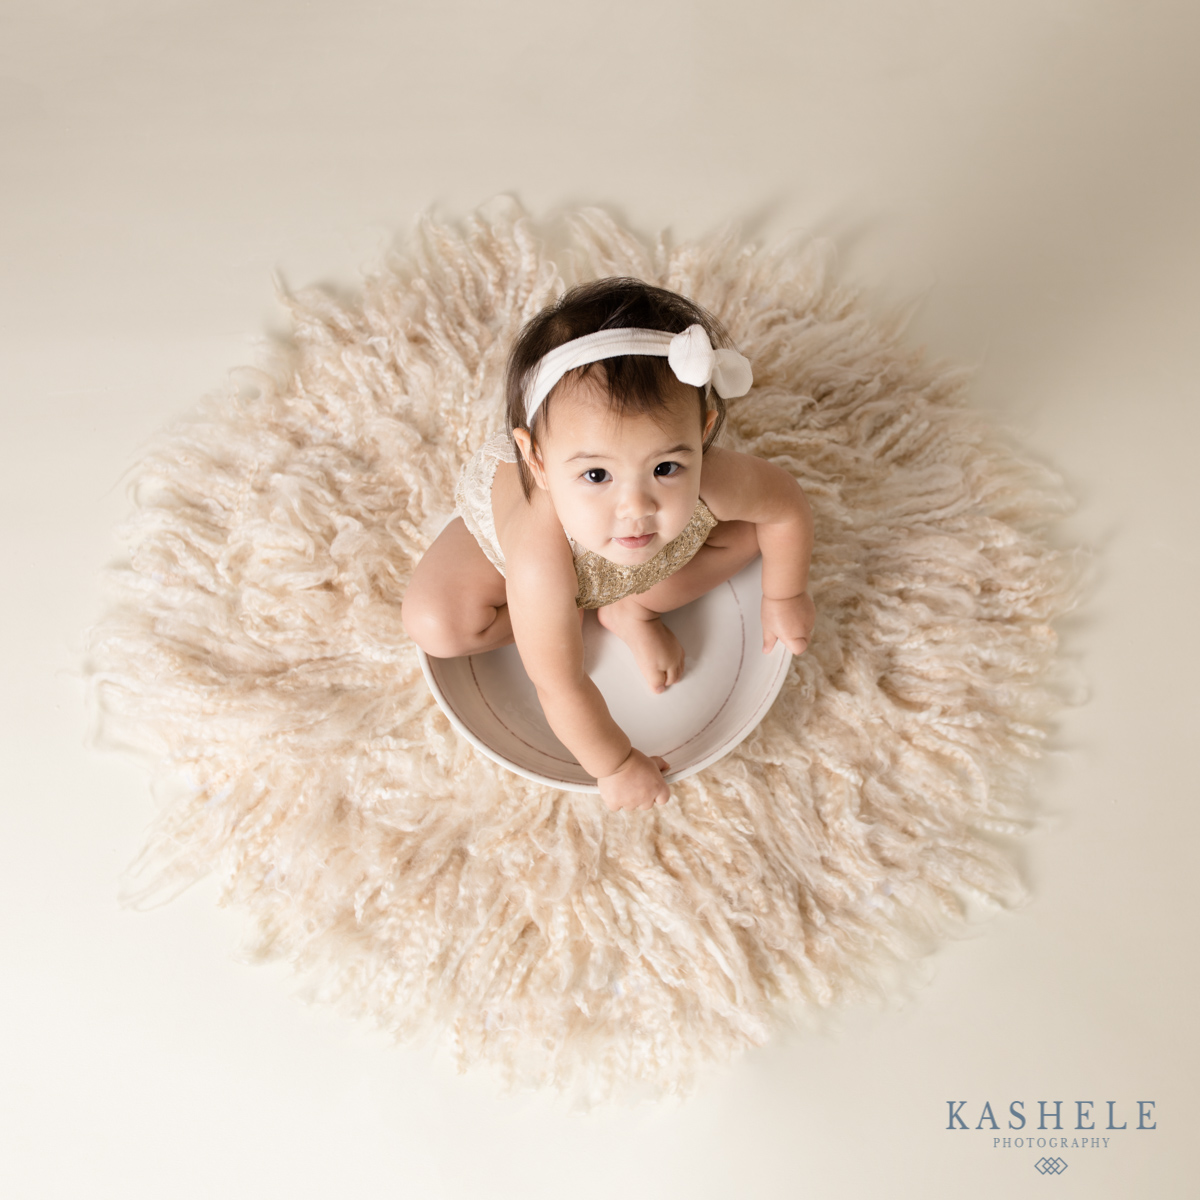 Image of little girl in bowl surrounded by fluff for Why schedule a milestone session post